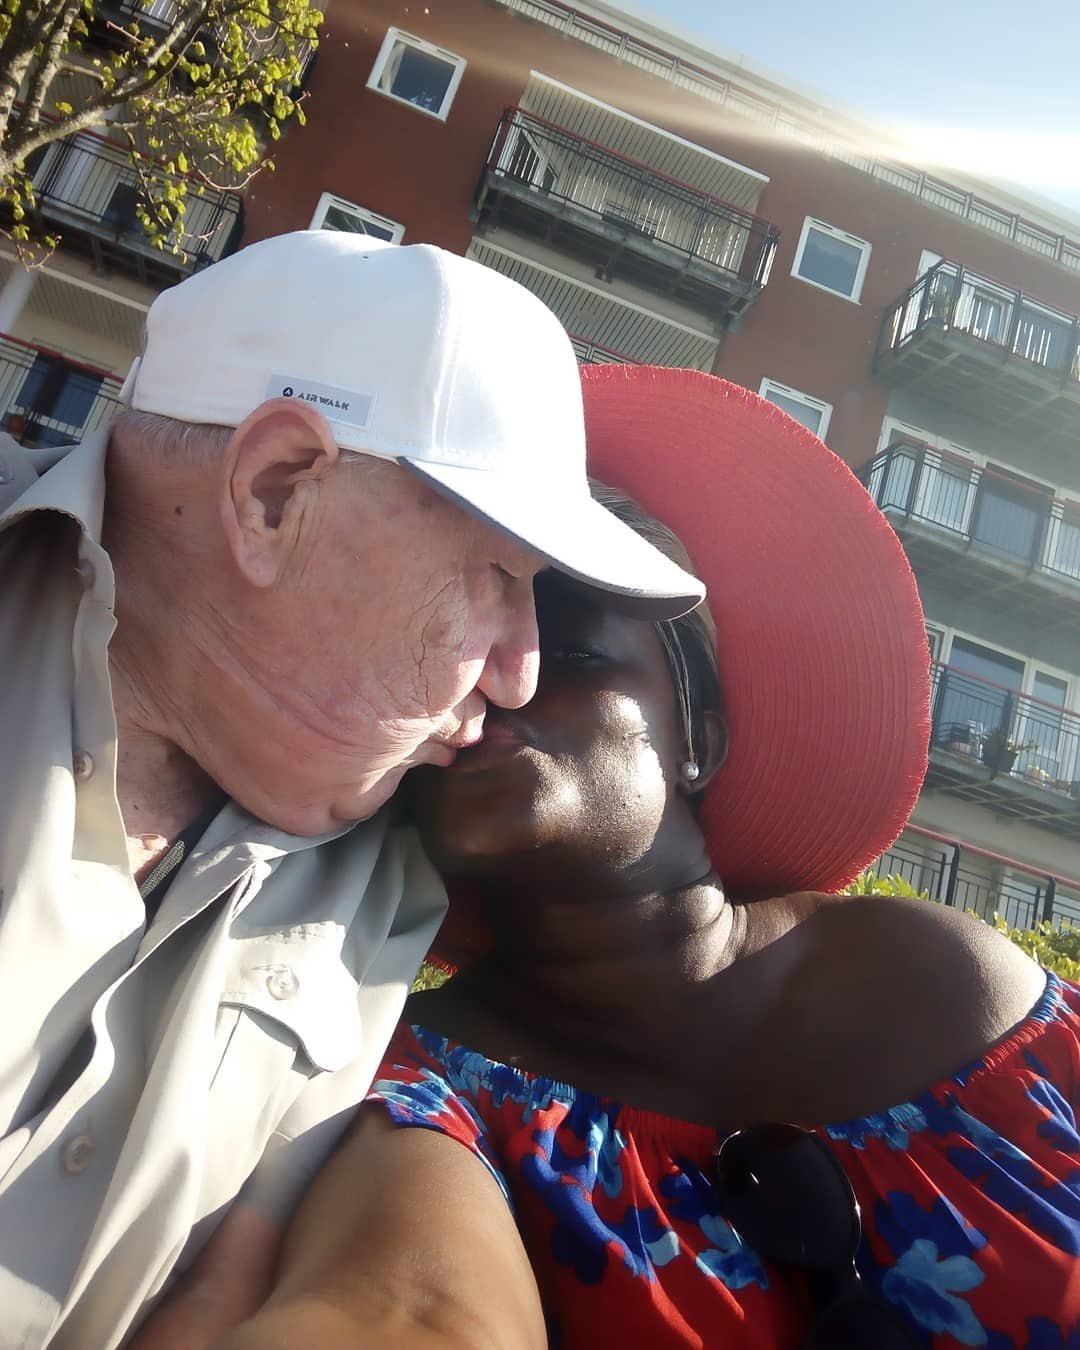 I married him when I didn't know Christ - Ghanaian Lady Ashlorm explains her marriage to a 90-Year-old white man